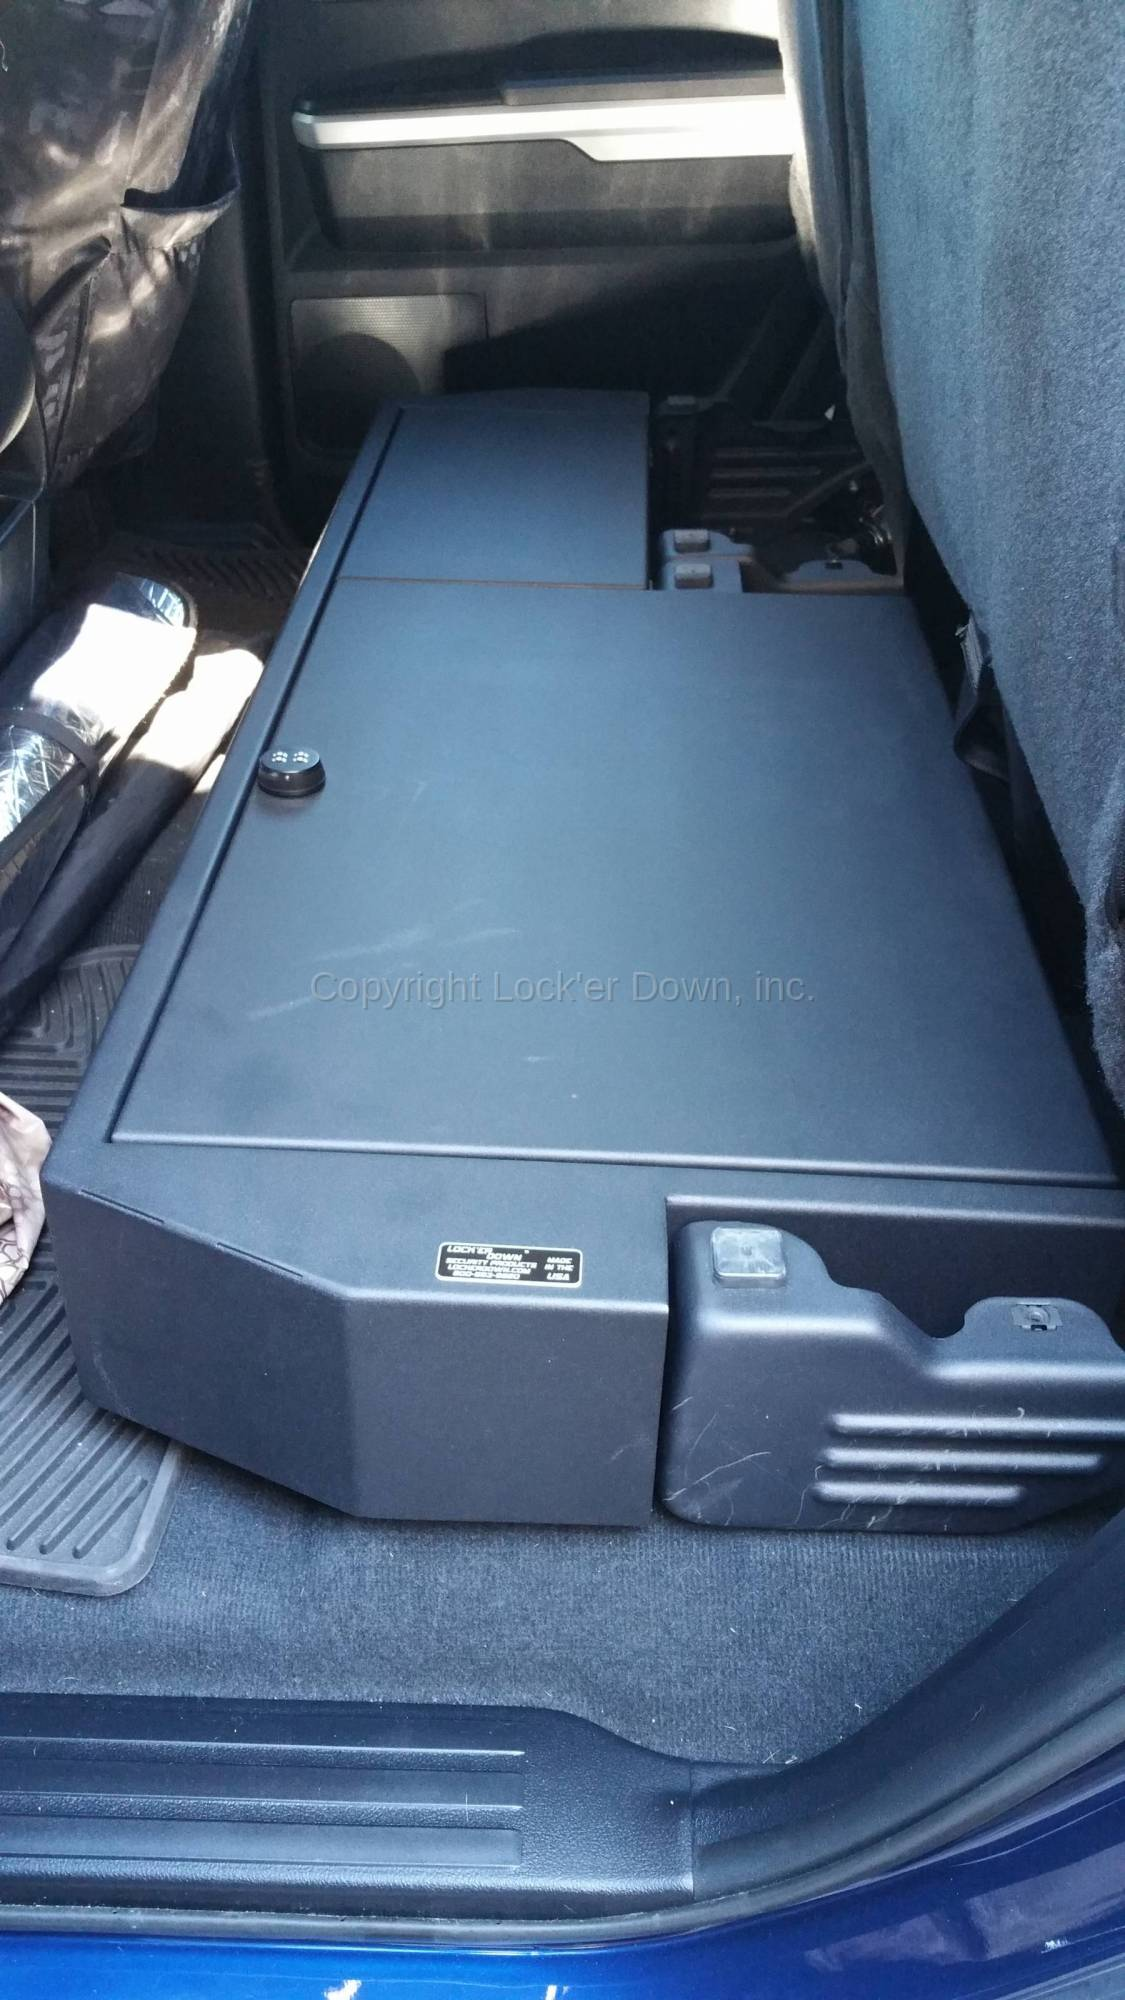 2018 Toyota Tundra Double Cab >> SUVault® LD3043 for 2007 - 2018 Toyota Tundra Double Cab Long Gun Safe